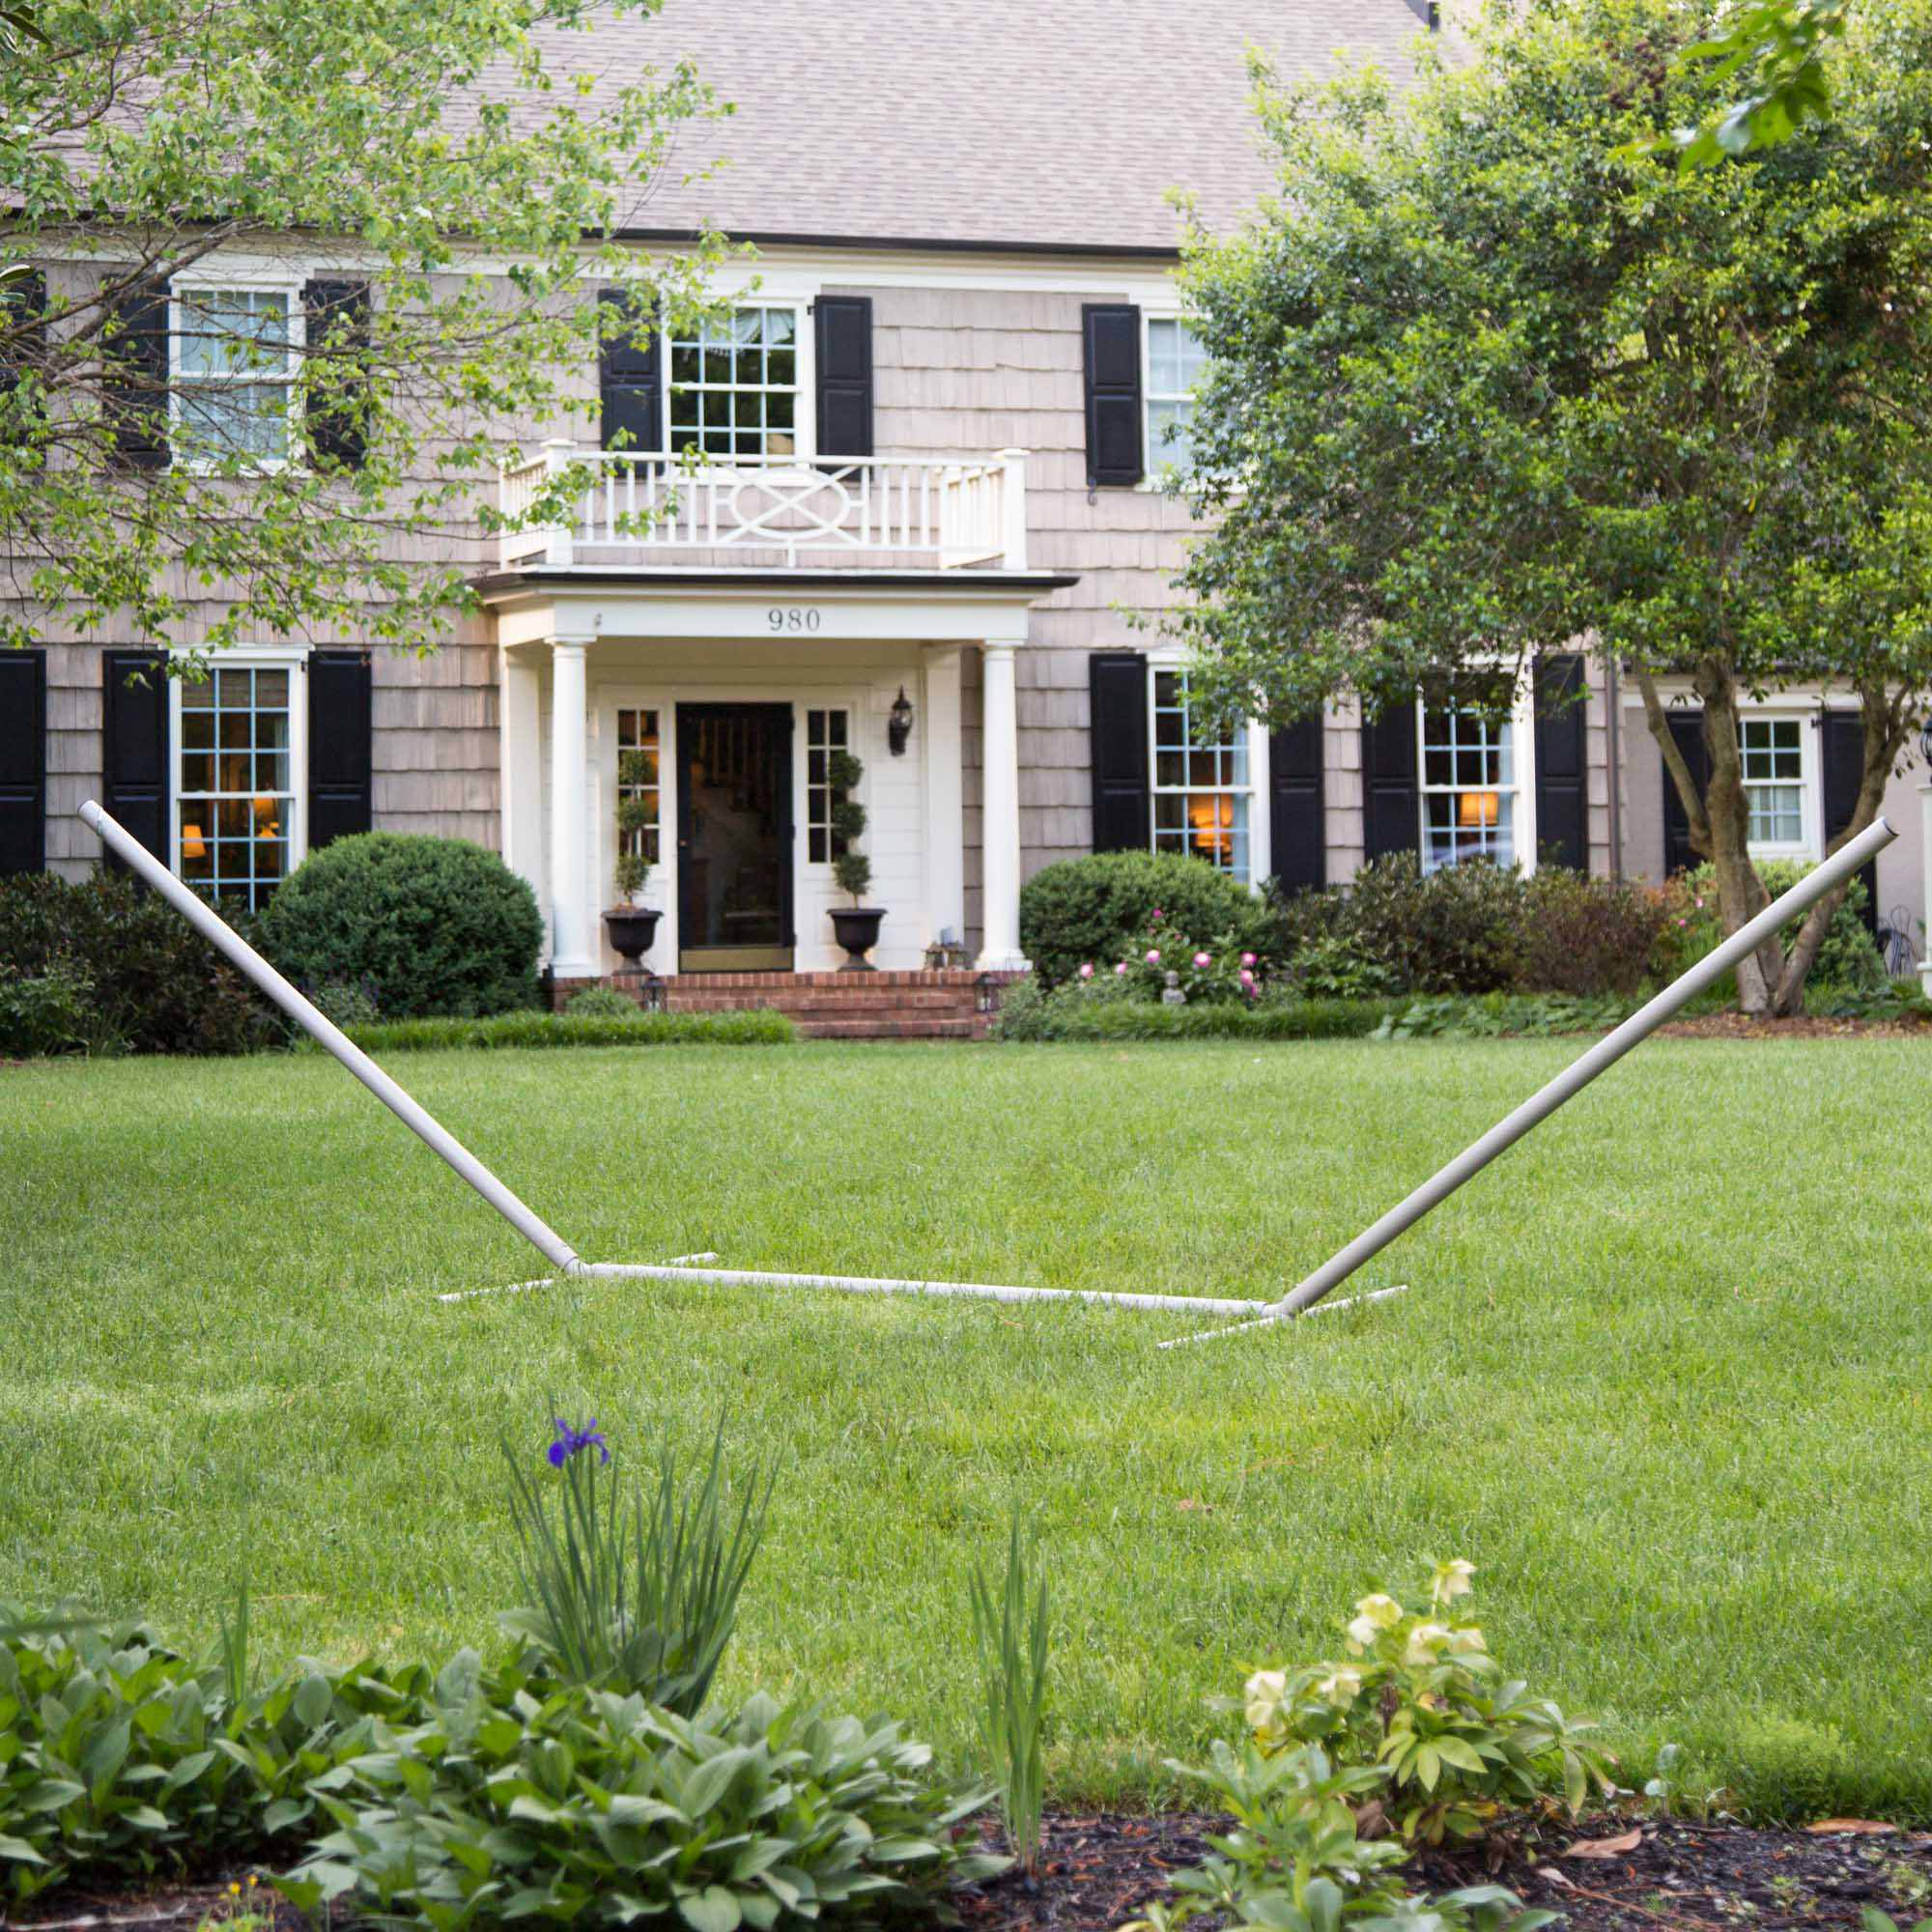 15 fttribeam steel hammock stand with right connection design and cape shield